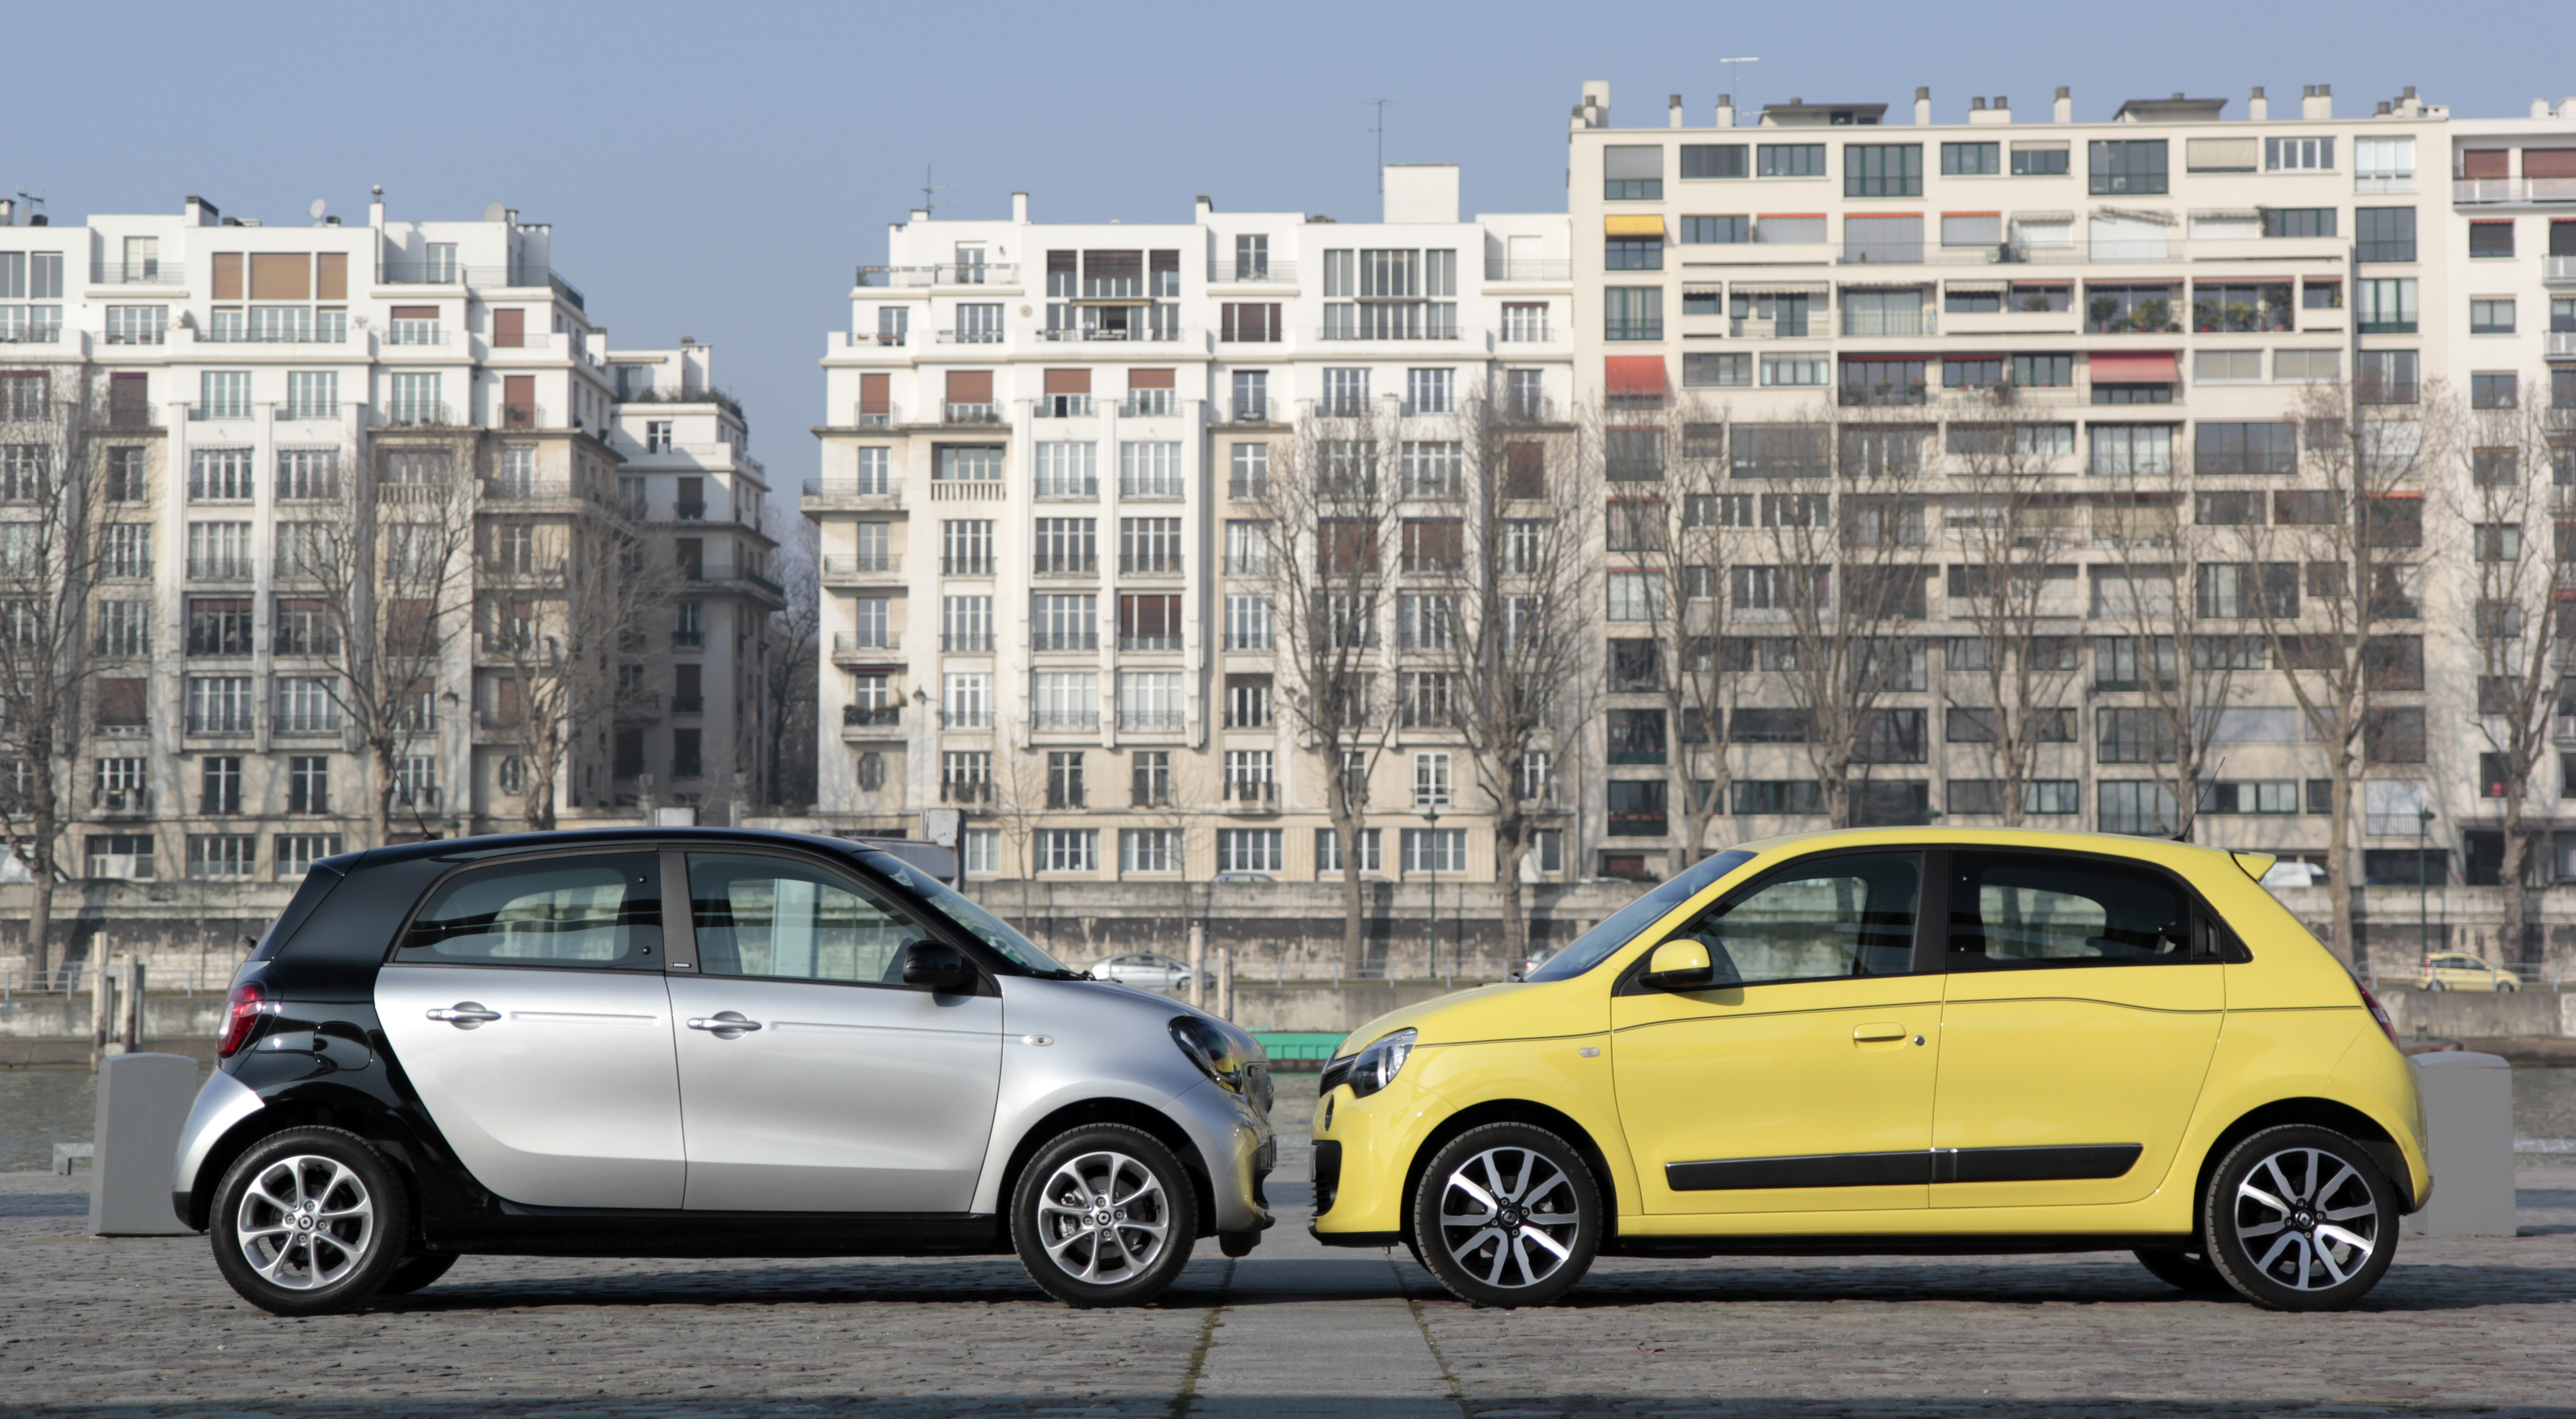 comparatif vid o renault twingo vs smart forfour. Black Bedroom Furniture Sets. Home Design Ideas